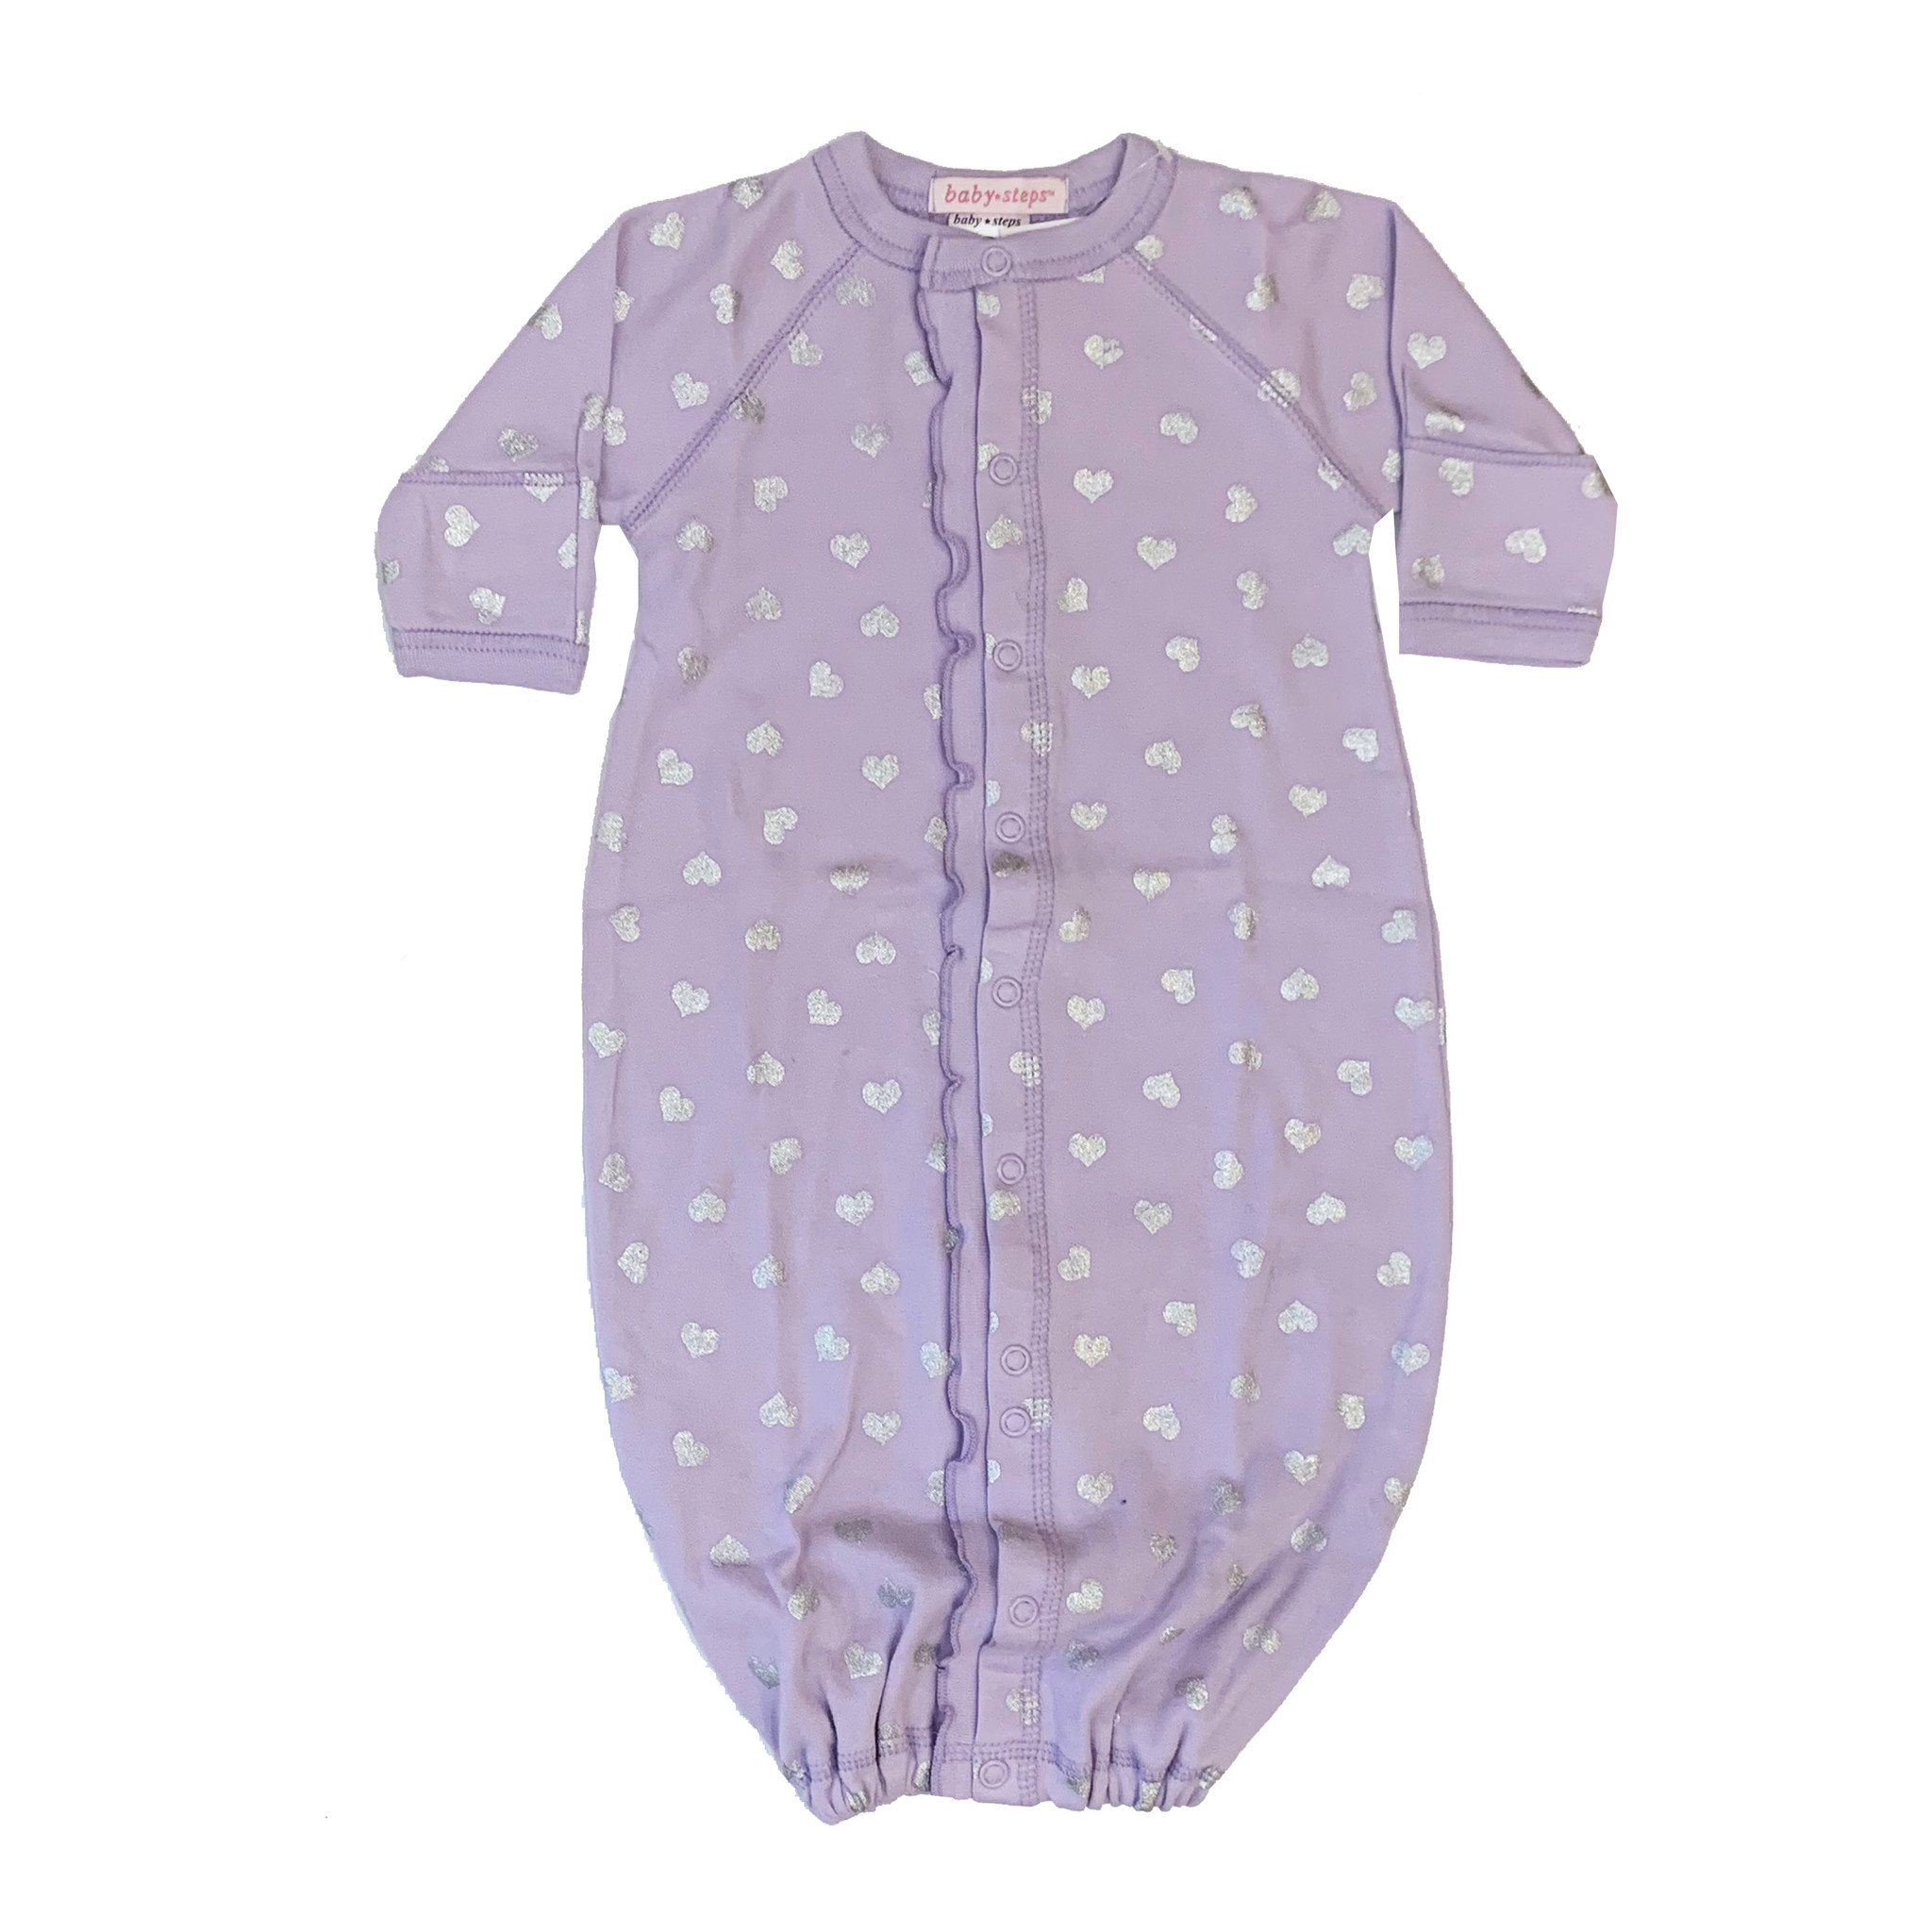 Baby Steps Lilac Gown with Silver Hearts NB